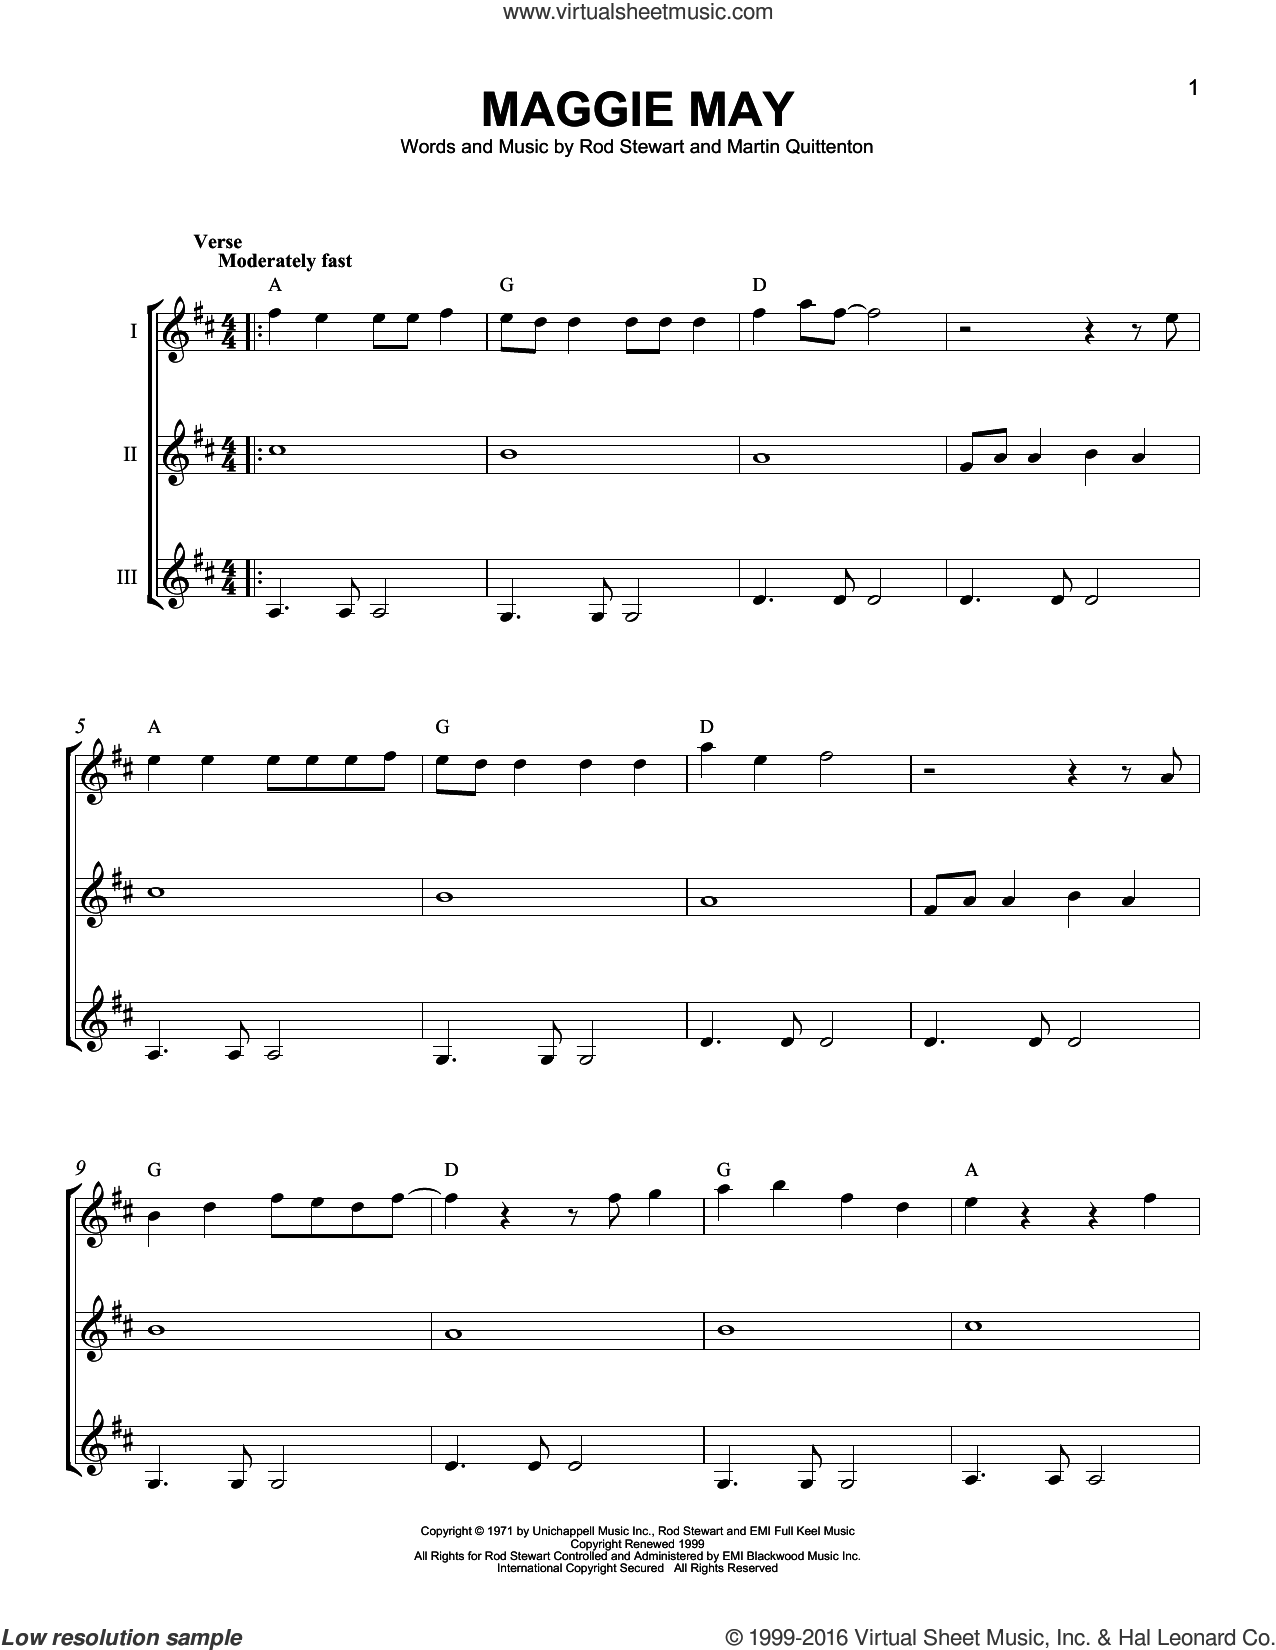 Maggie May sheet music for guitar ensemble by Rod Stewart and Martin Quittenton, intermediate skill level